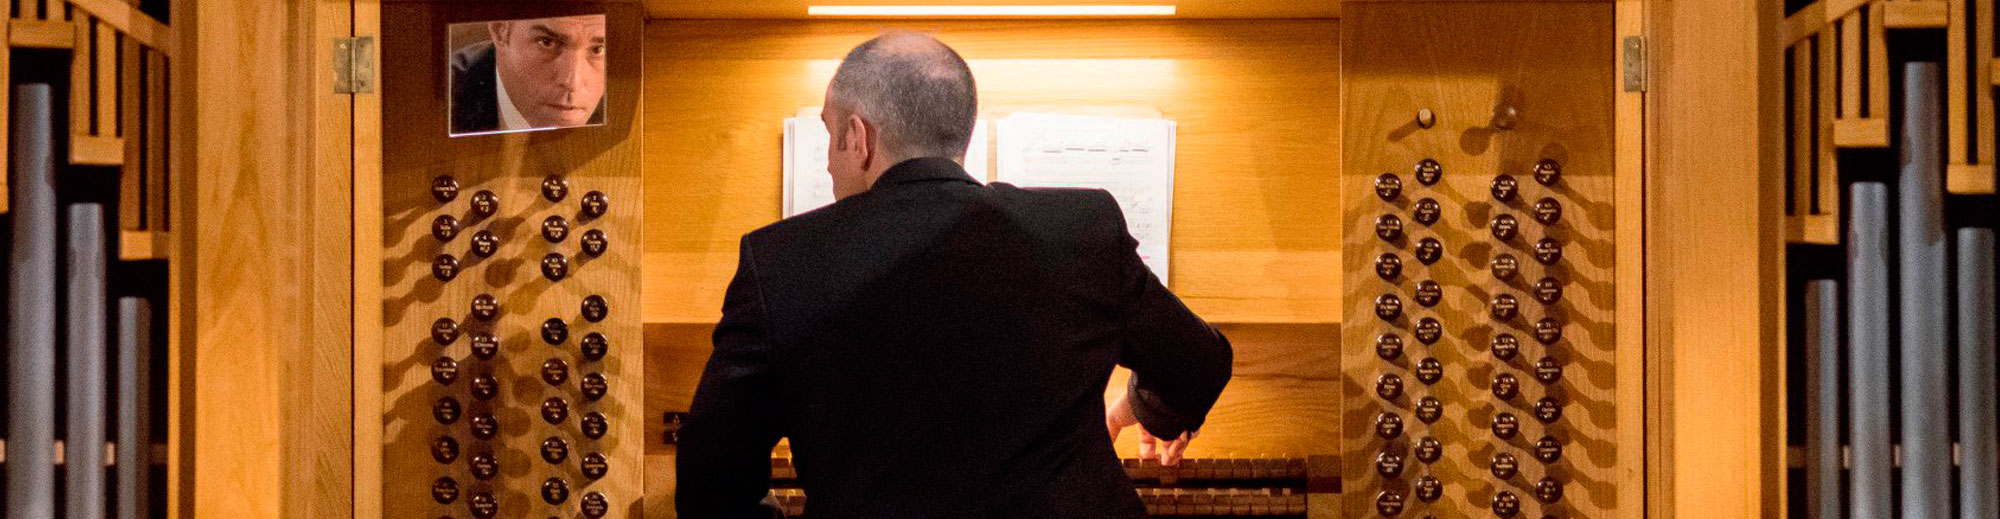 Juan de la Rubia debut with the Spanish National Orchestra